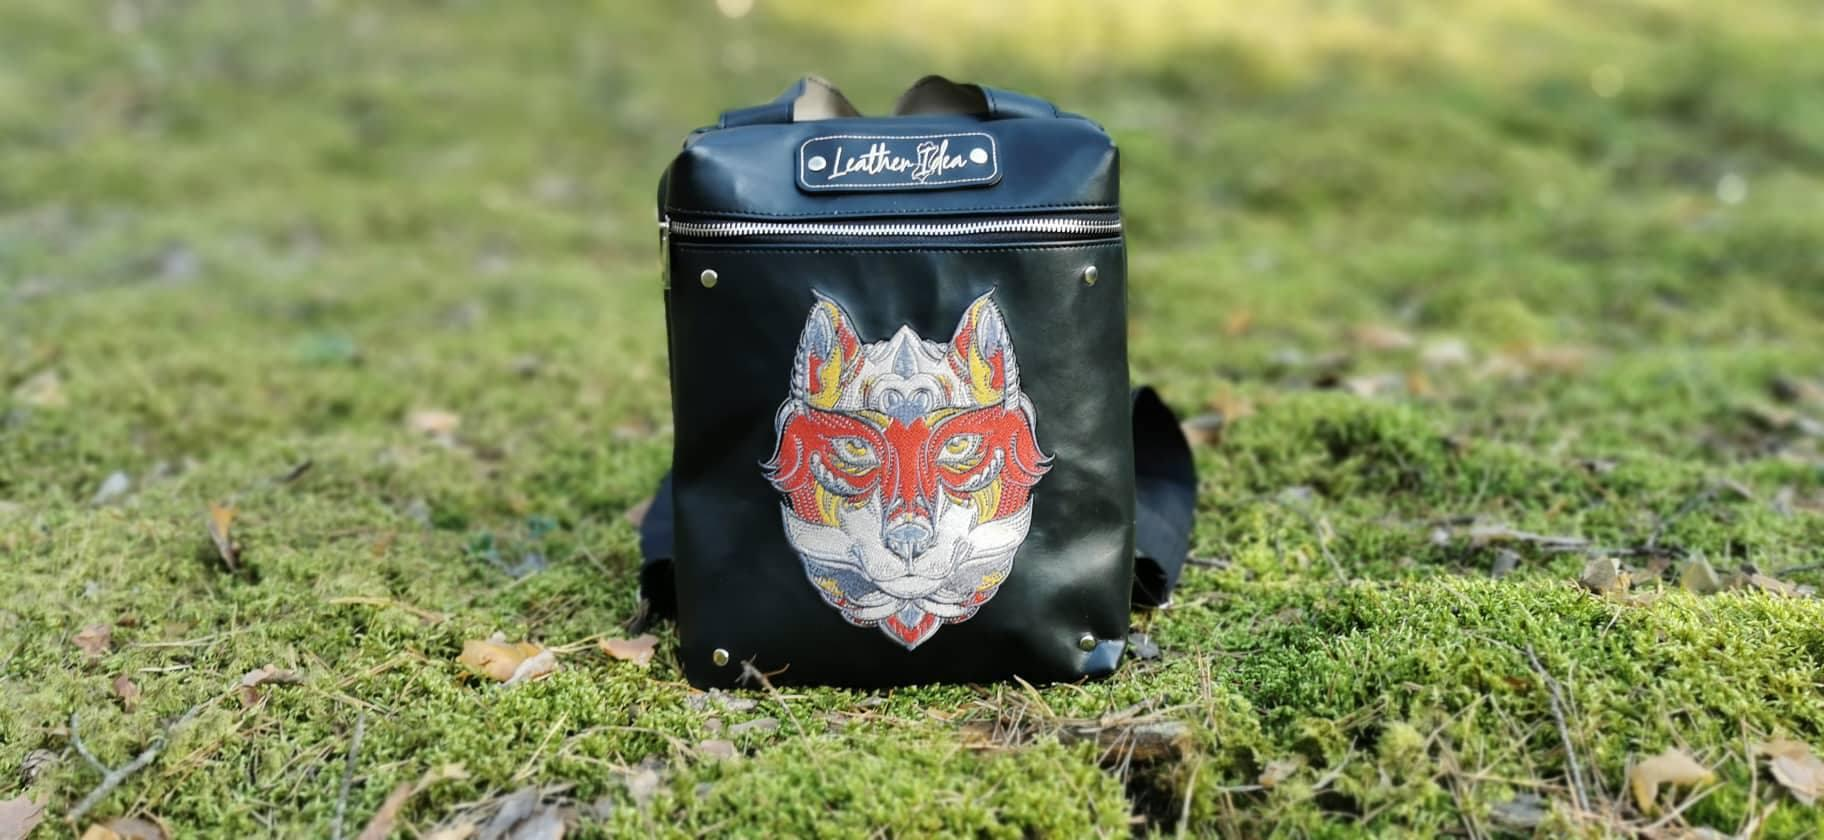 Embroidered backpack with Fox design